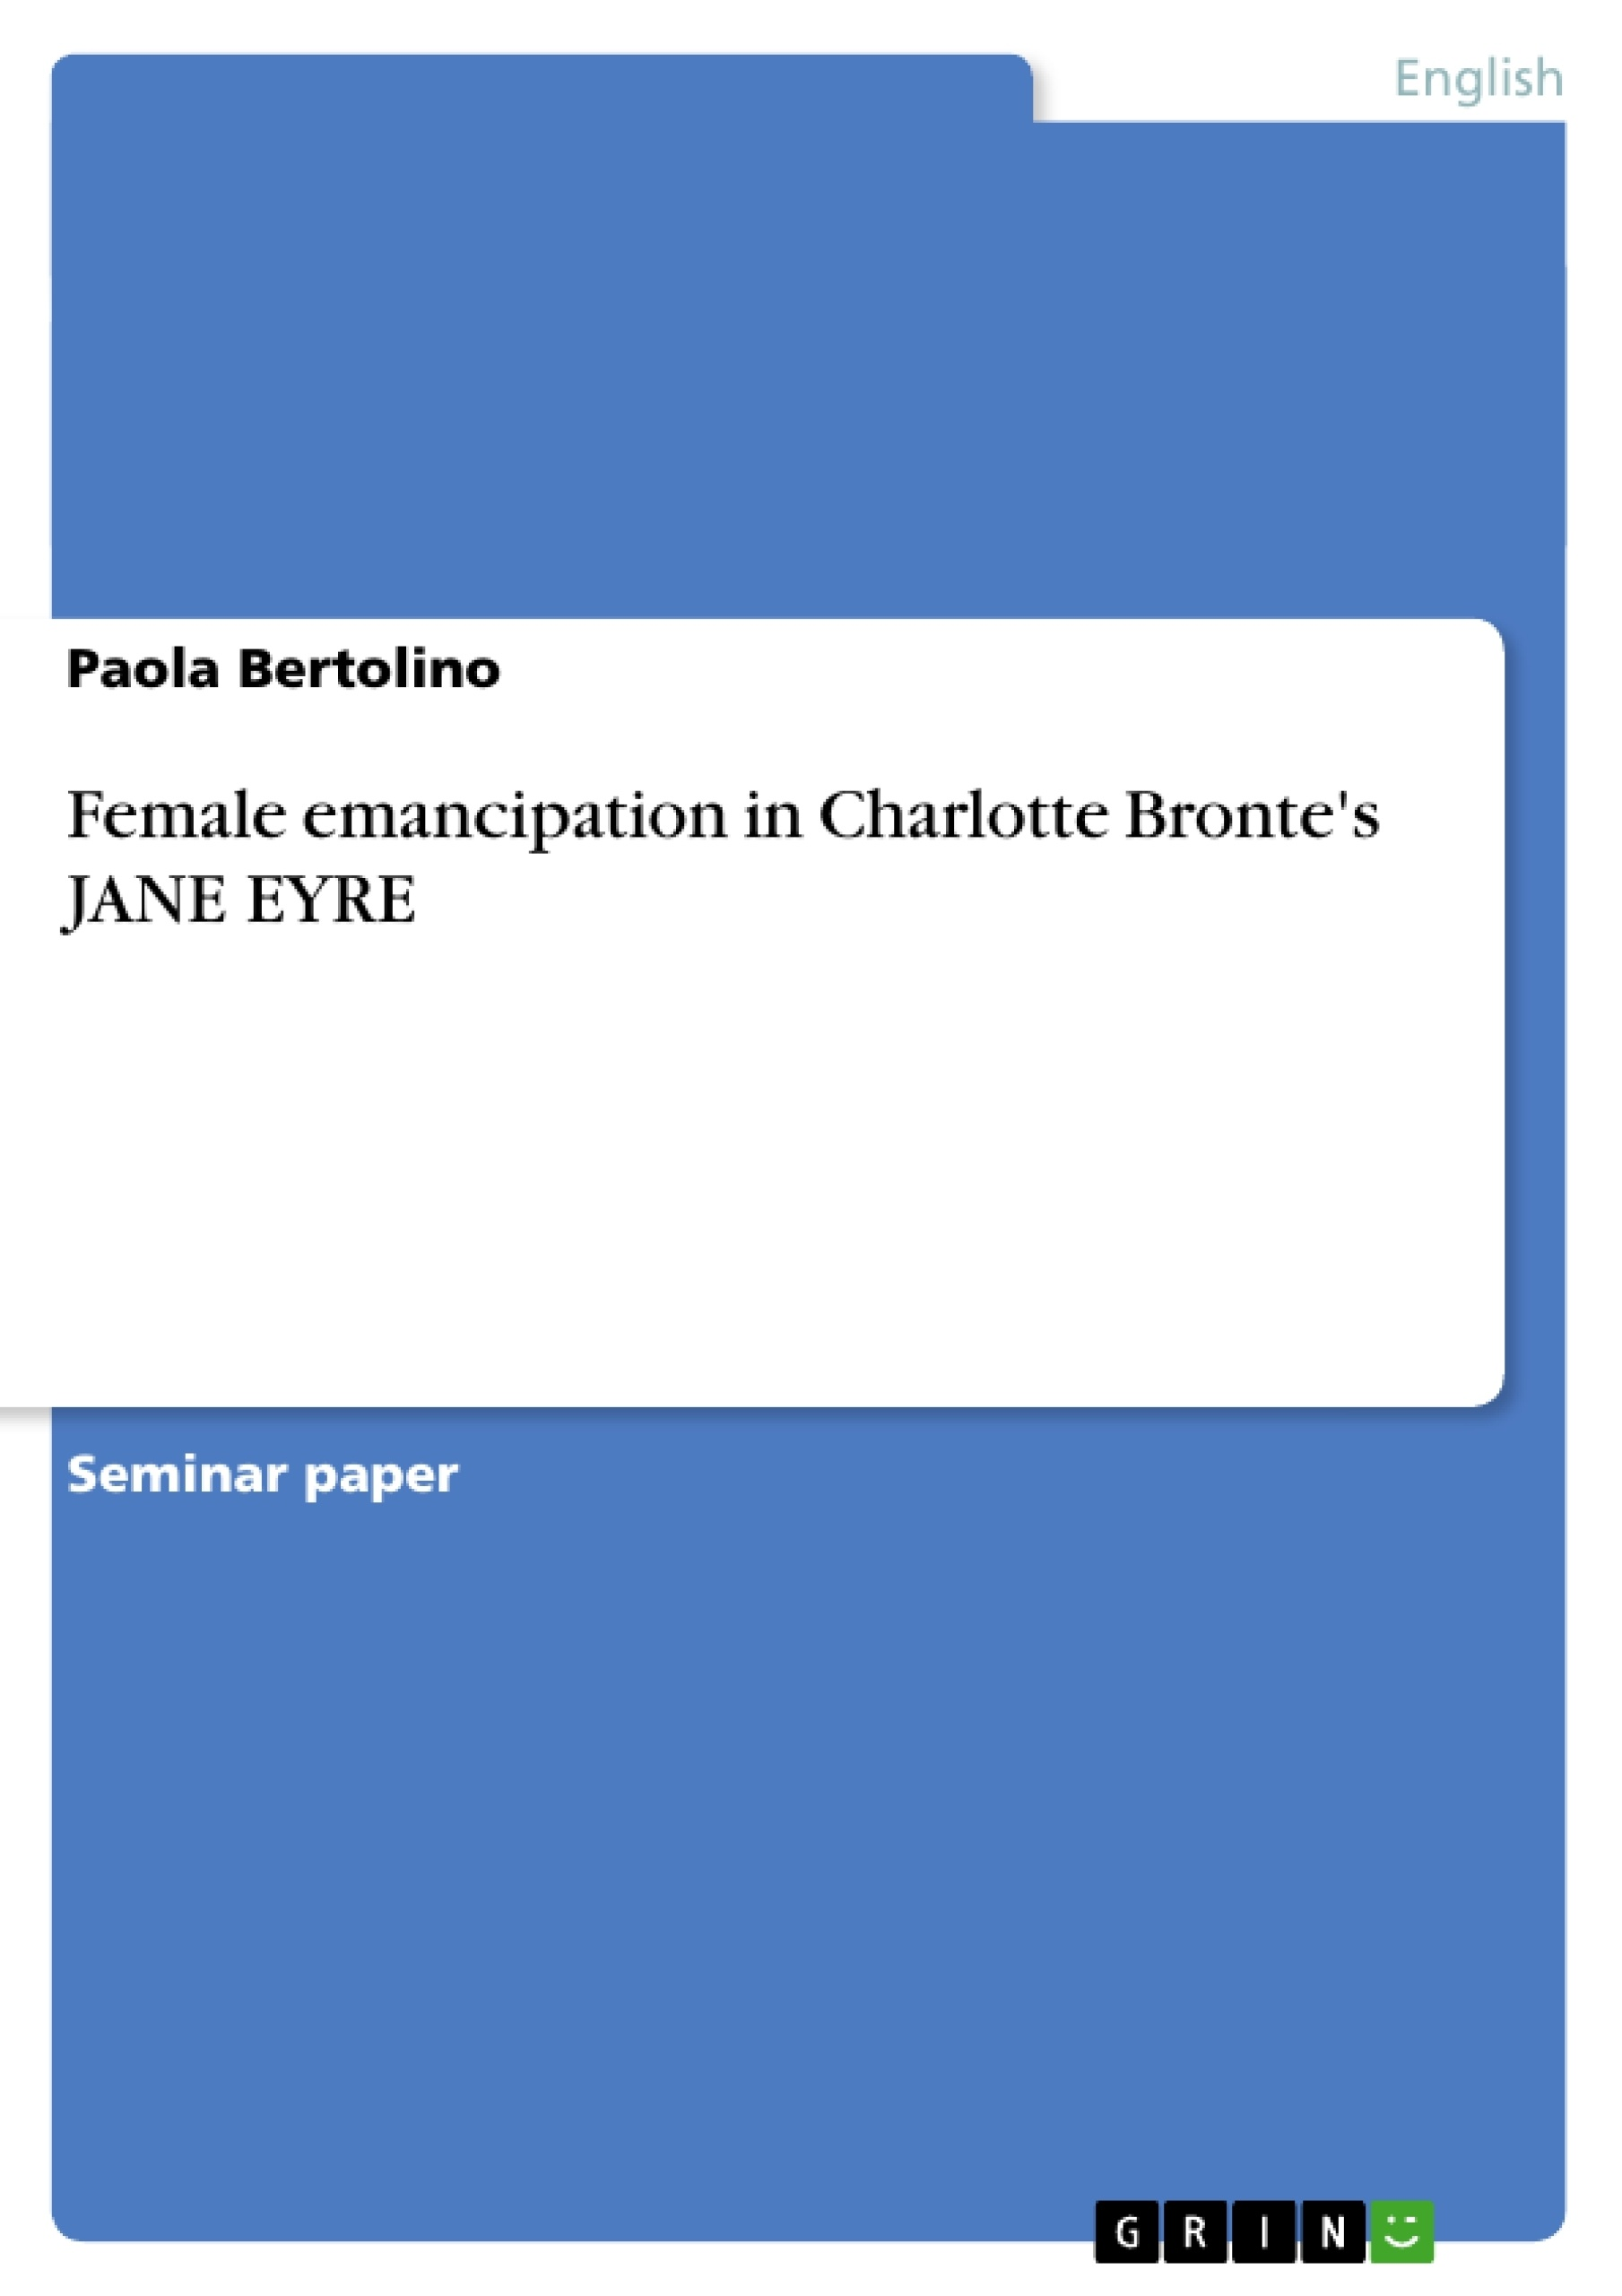 jane eyre research essay Free term papers on jane eyre available at  essay, book report or research paper in seconds or we will write a brand  jane does grow in the book jane eyre.